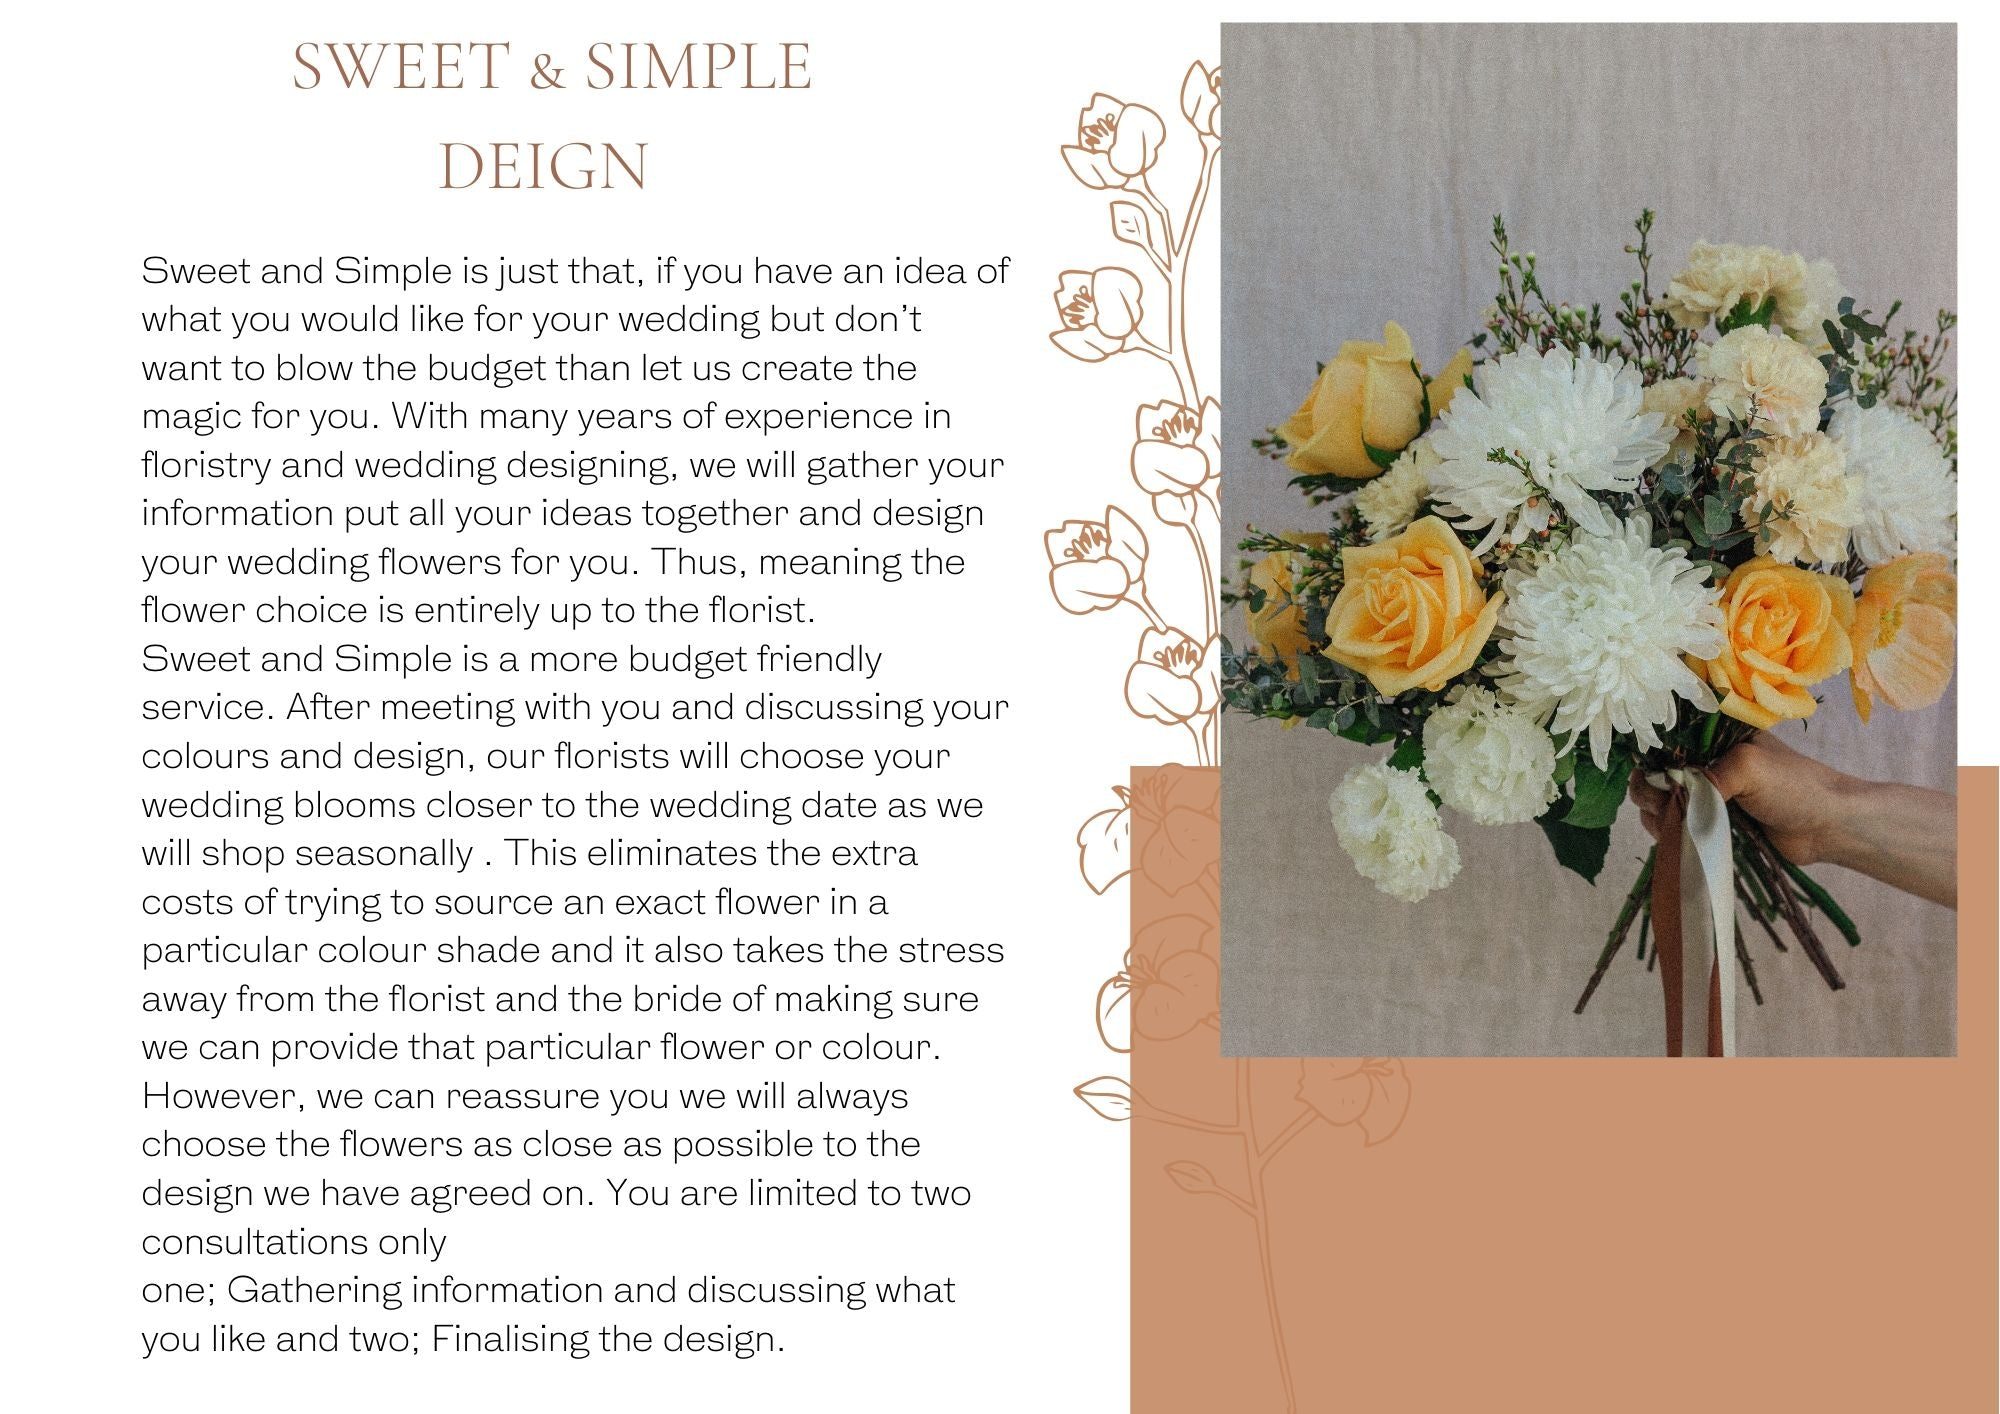 Buds on Buderim wedding florist, sunshine coast wedding florist, budget weddings, cheap wedding florist, bridal bouquet, dried wedding flowers, maroochydore wedding florist